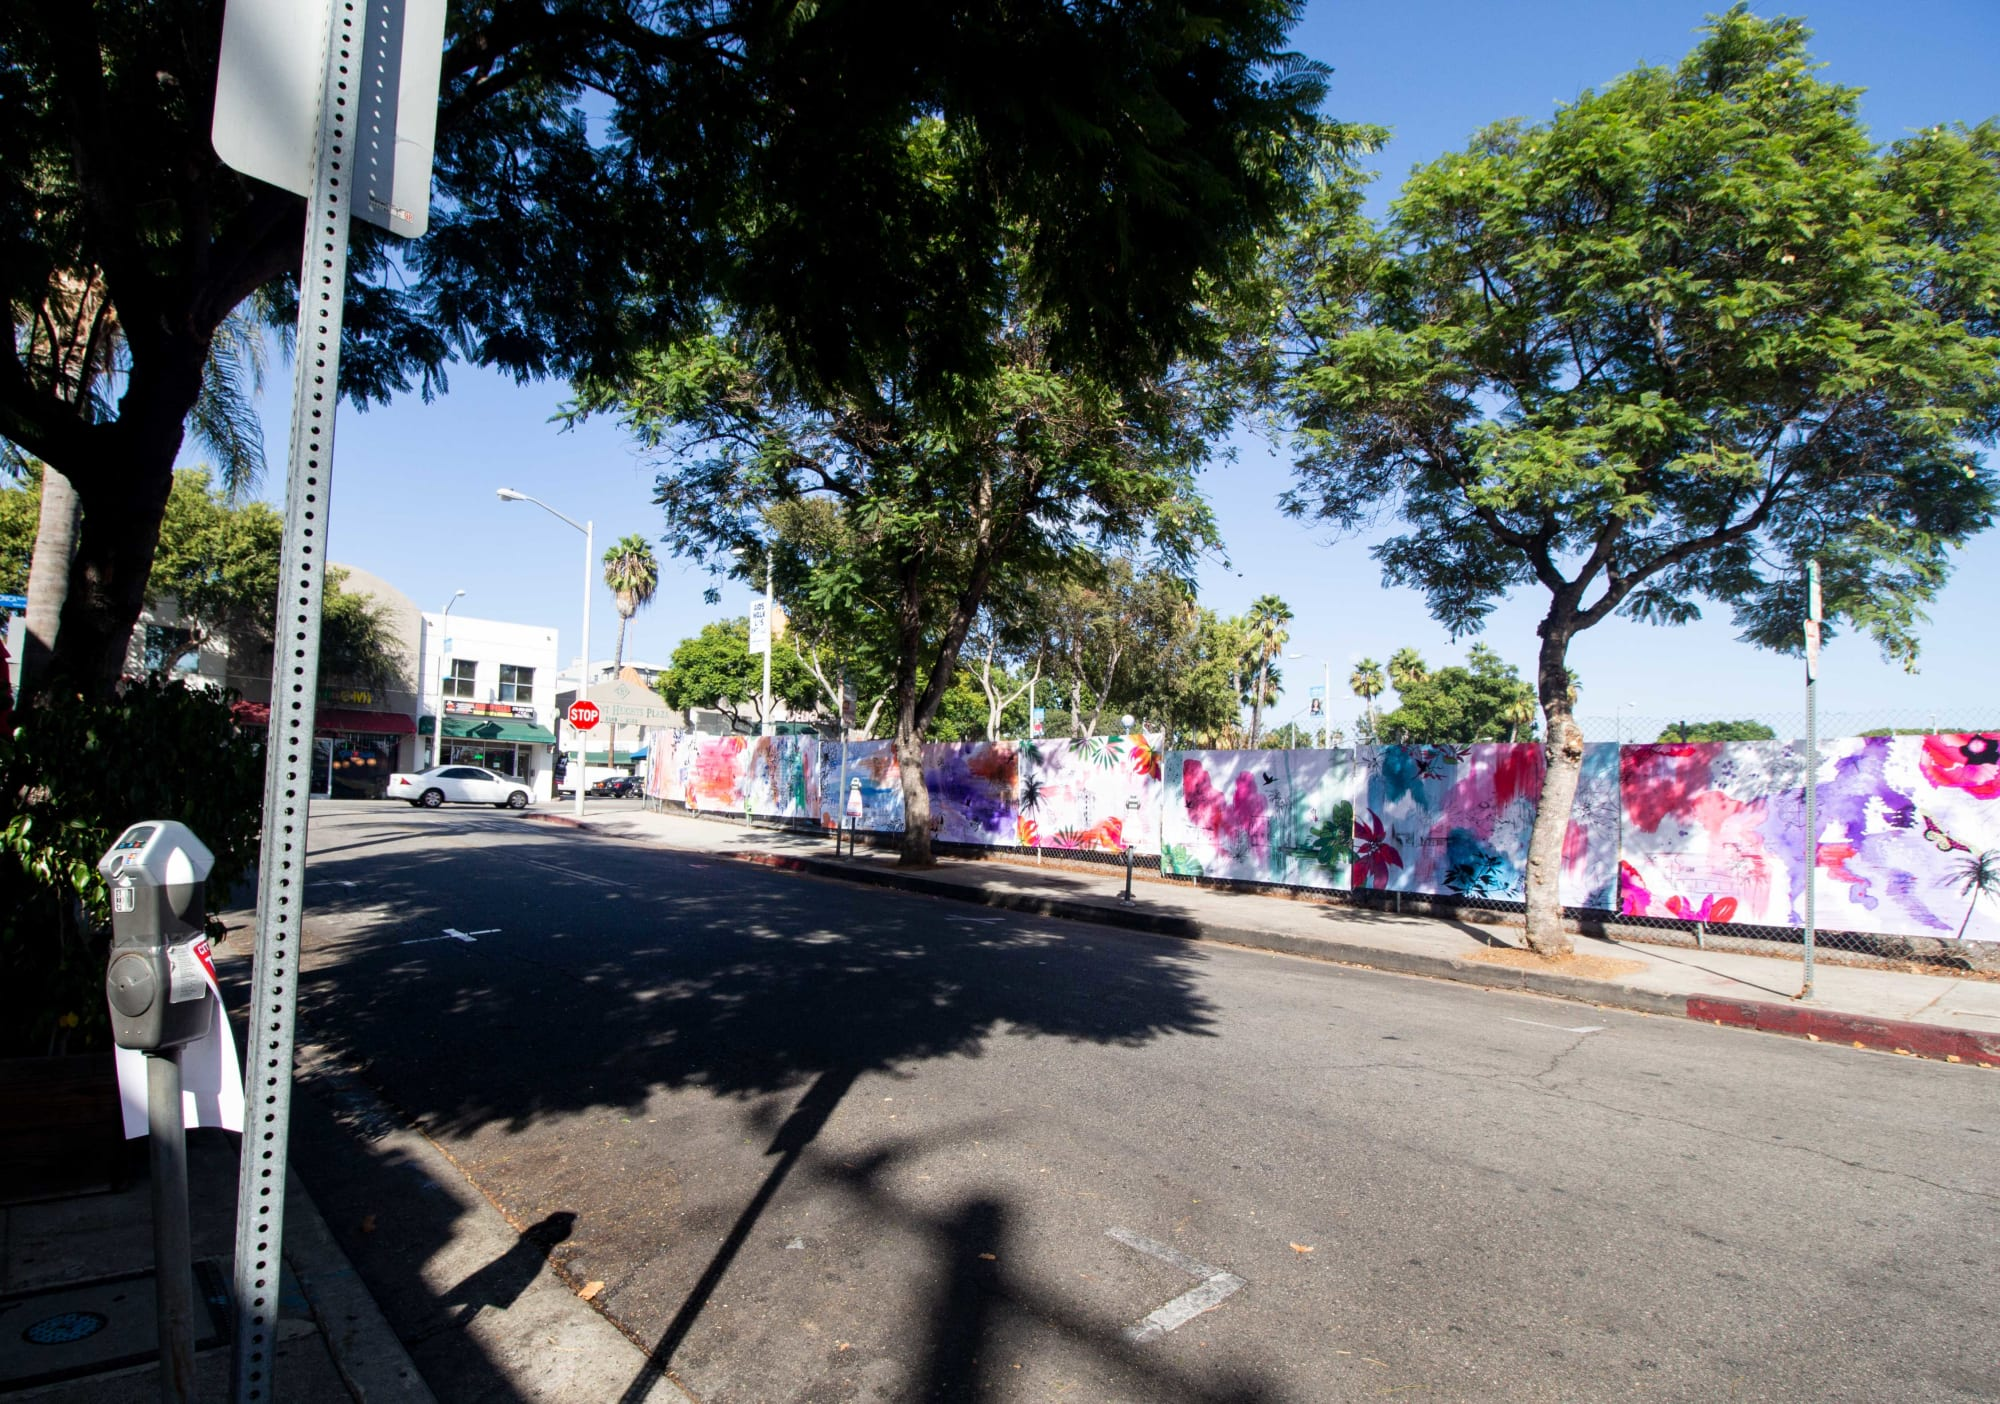 Street Murals by Welcome to the Brightside seen at 8120 Santa Monica Blvd, West Hollywood - Turret Affair